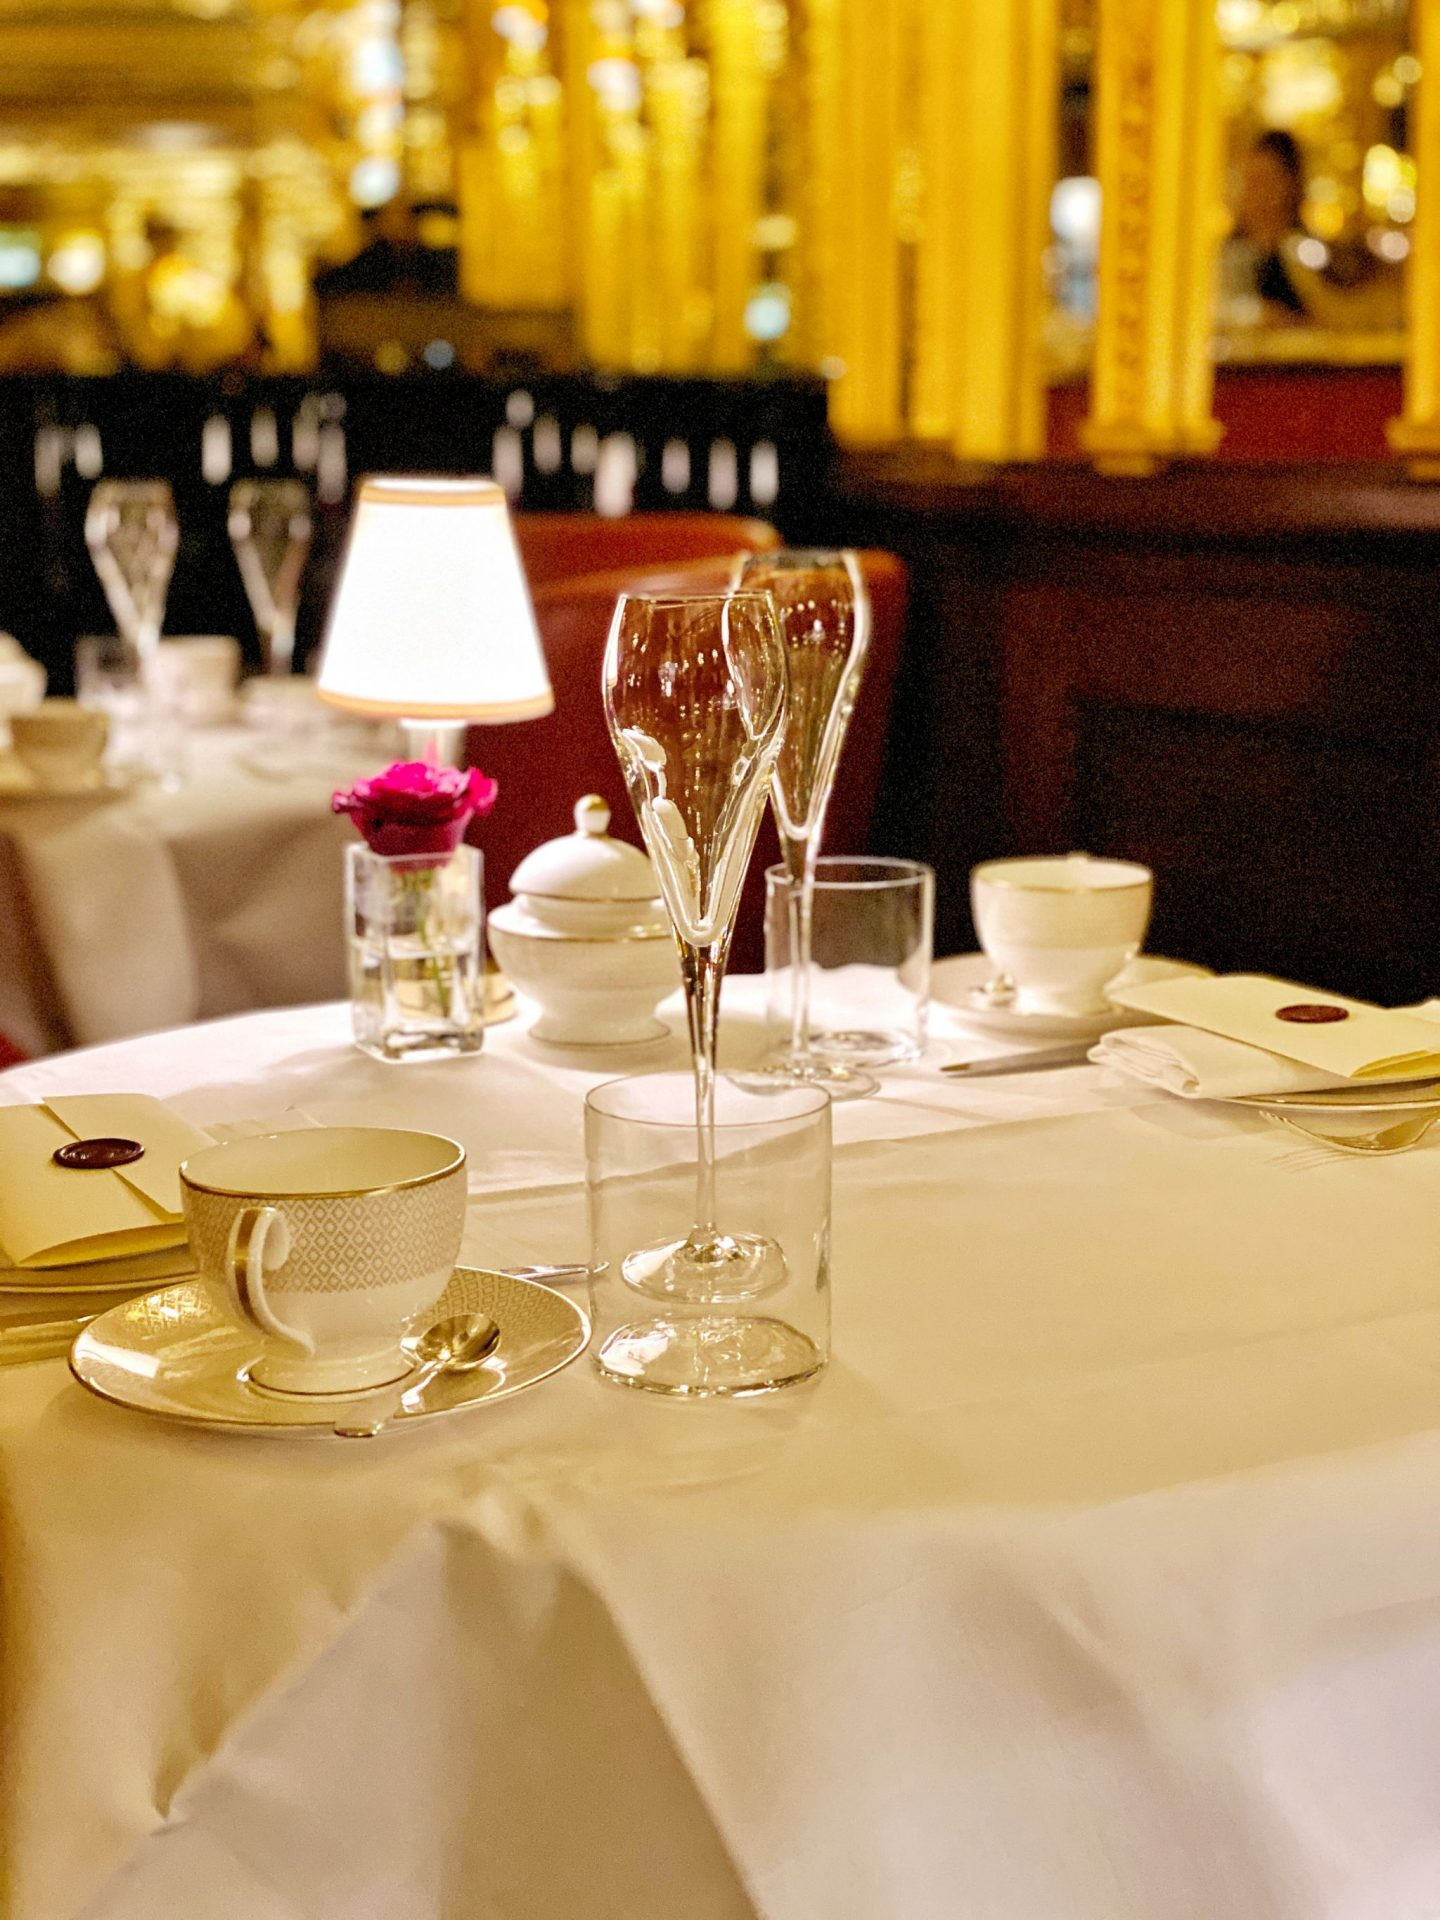 Hotel Cafe Royal Afternoon Tea